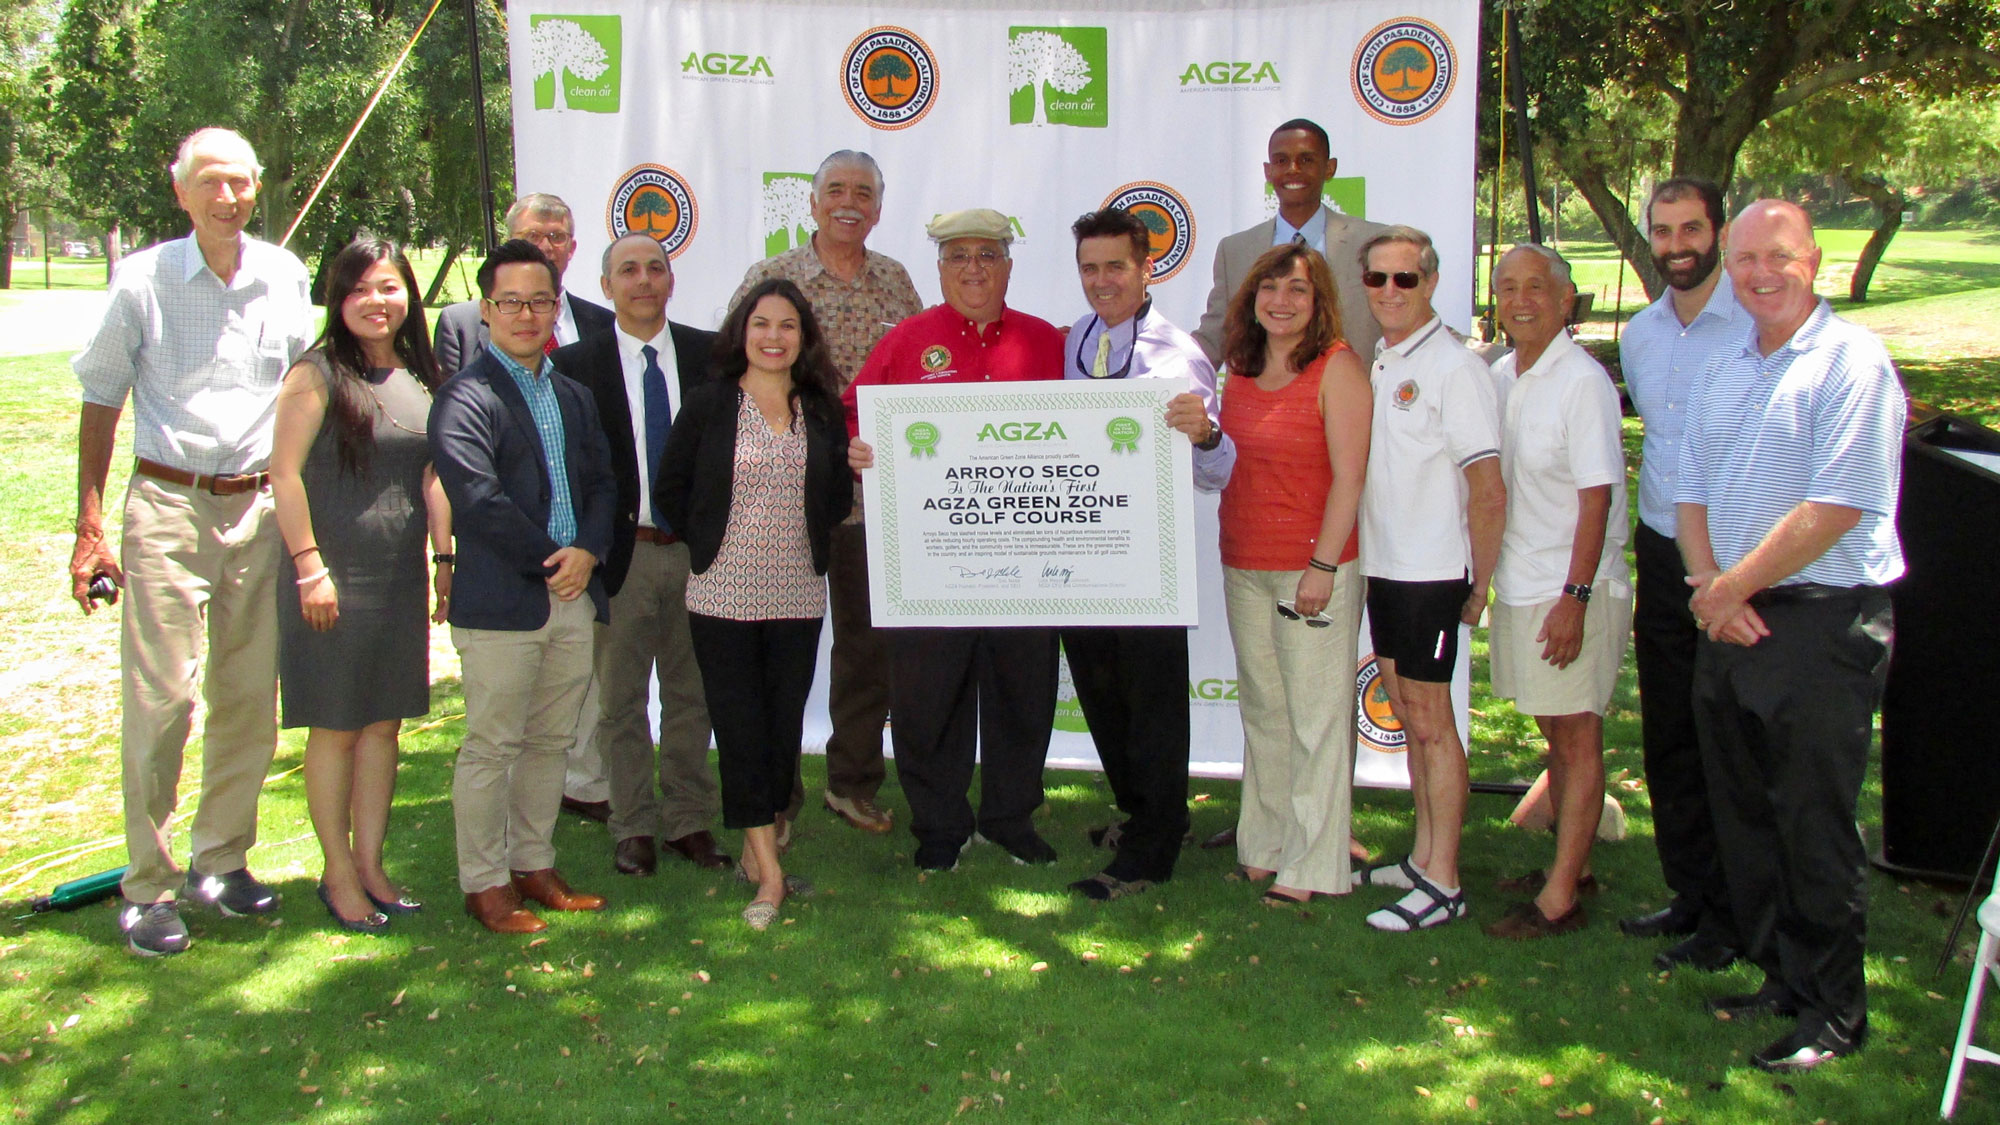 CA State Senator Portantino and South Pasadena Mayor Cacciotti hold the AGZA Green Zone Certification, flanked by representatives from city and state, SCAQMD, Donovan Bros Golf, American Lung Association, Coalition for Clean Air, Sierra Club, and Noise Free America.